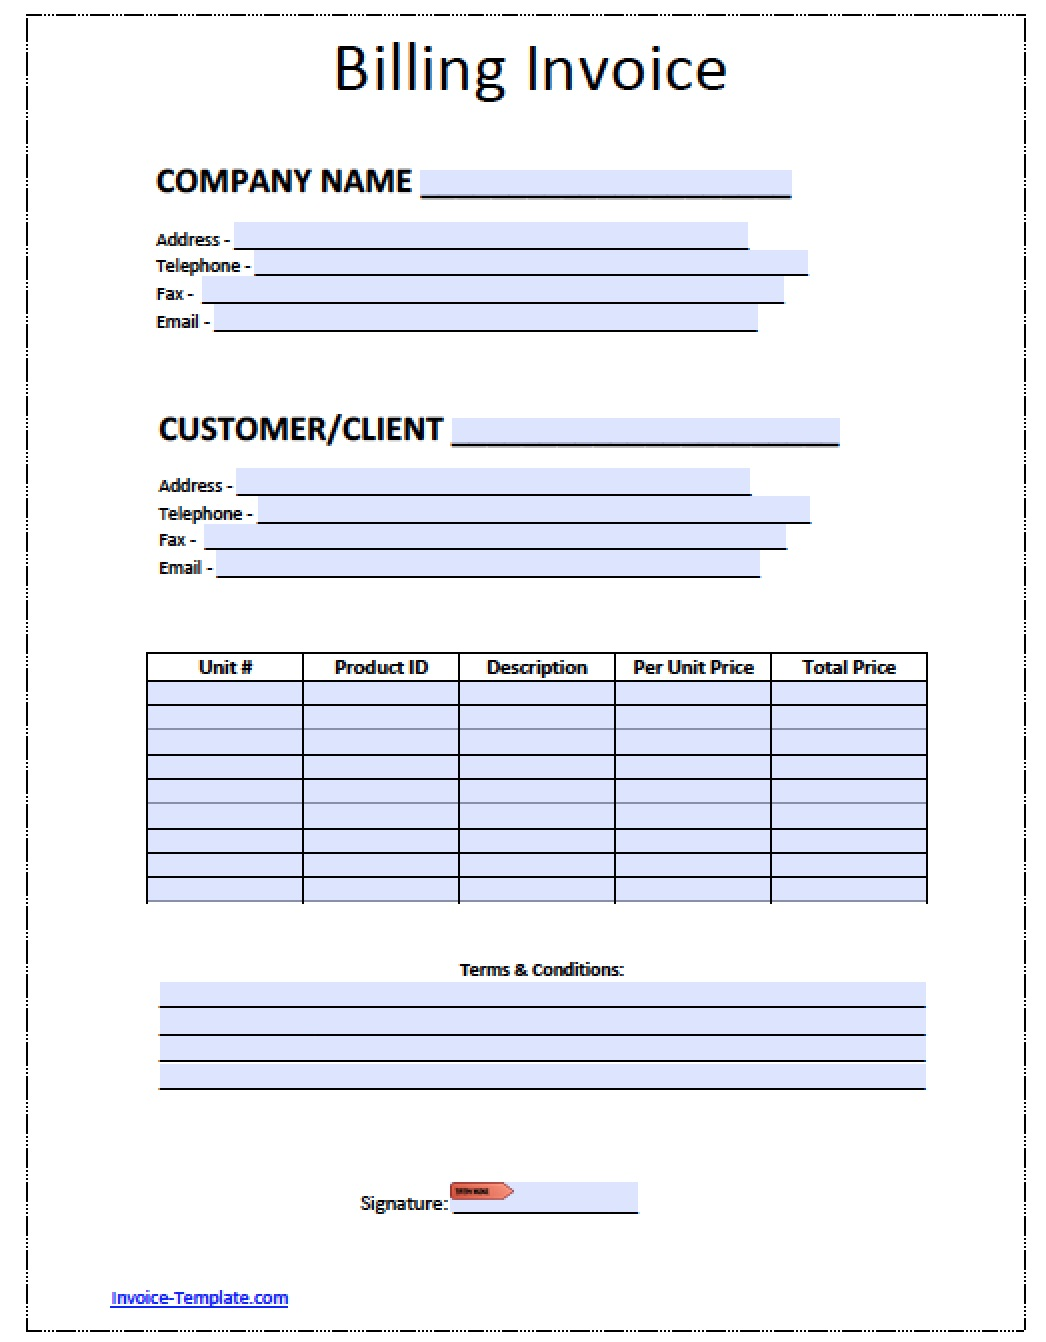 Shopdesignsus  Wonderful Billing Invoice Invoices Faq U Cloudflare Support Billing  With Fetching Free Billing Invoice Template  Excel  Pdf  Word Doc  Billing With Charming Tax Invoice Format In Excel Also Cheap Invoice Books In Addition School Invoice Template And Carpenter Invoice Template As Well As Book Invoice Additionally Invoice Processing Procedure From Happytomco With Shopdesignsus  Fetching Billing Invoice Invoices Faq U Cloudflare Support Billing  With Charming Free Billing Invoice Template  Excel  Pdf  Word Doc  Billing And Wonderful Tax Invoice Format In Excel Also Cheap Invoice Books In Addition School Invoice Template From Happytomco